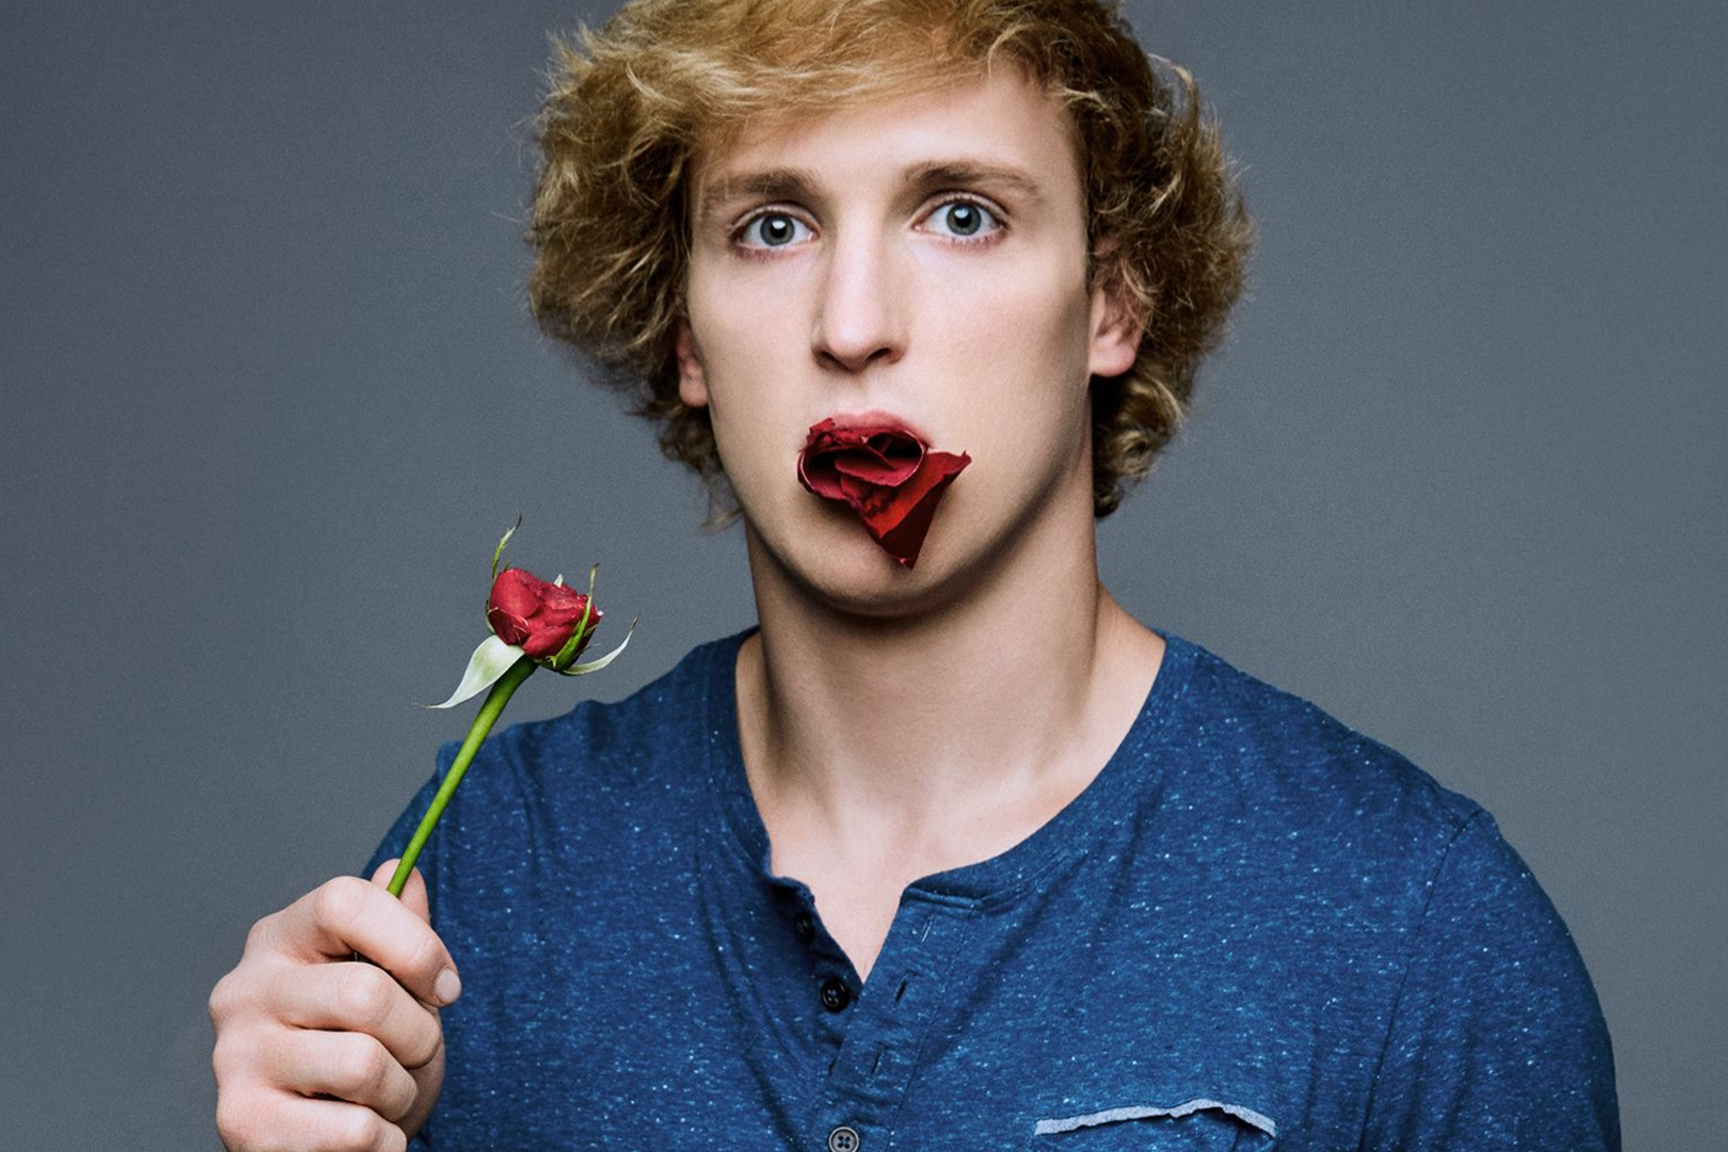 LOGAN PAUL - Actor / Director / Social Media Influencer